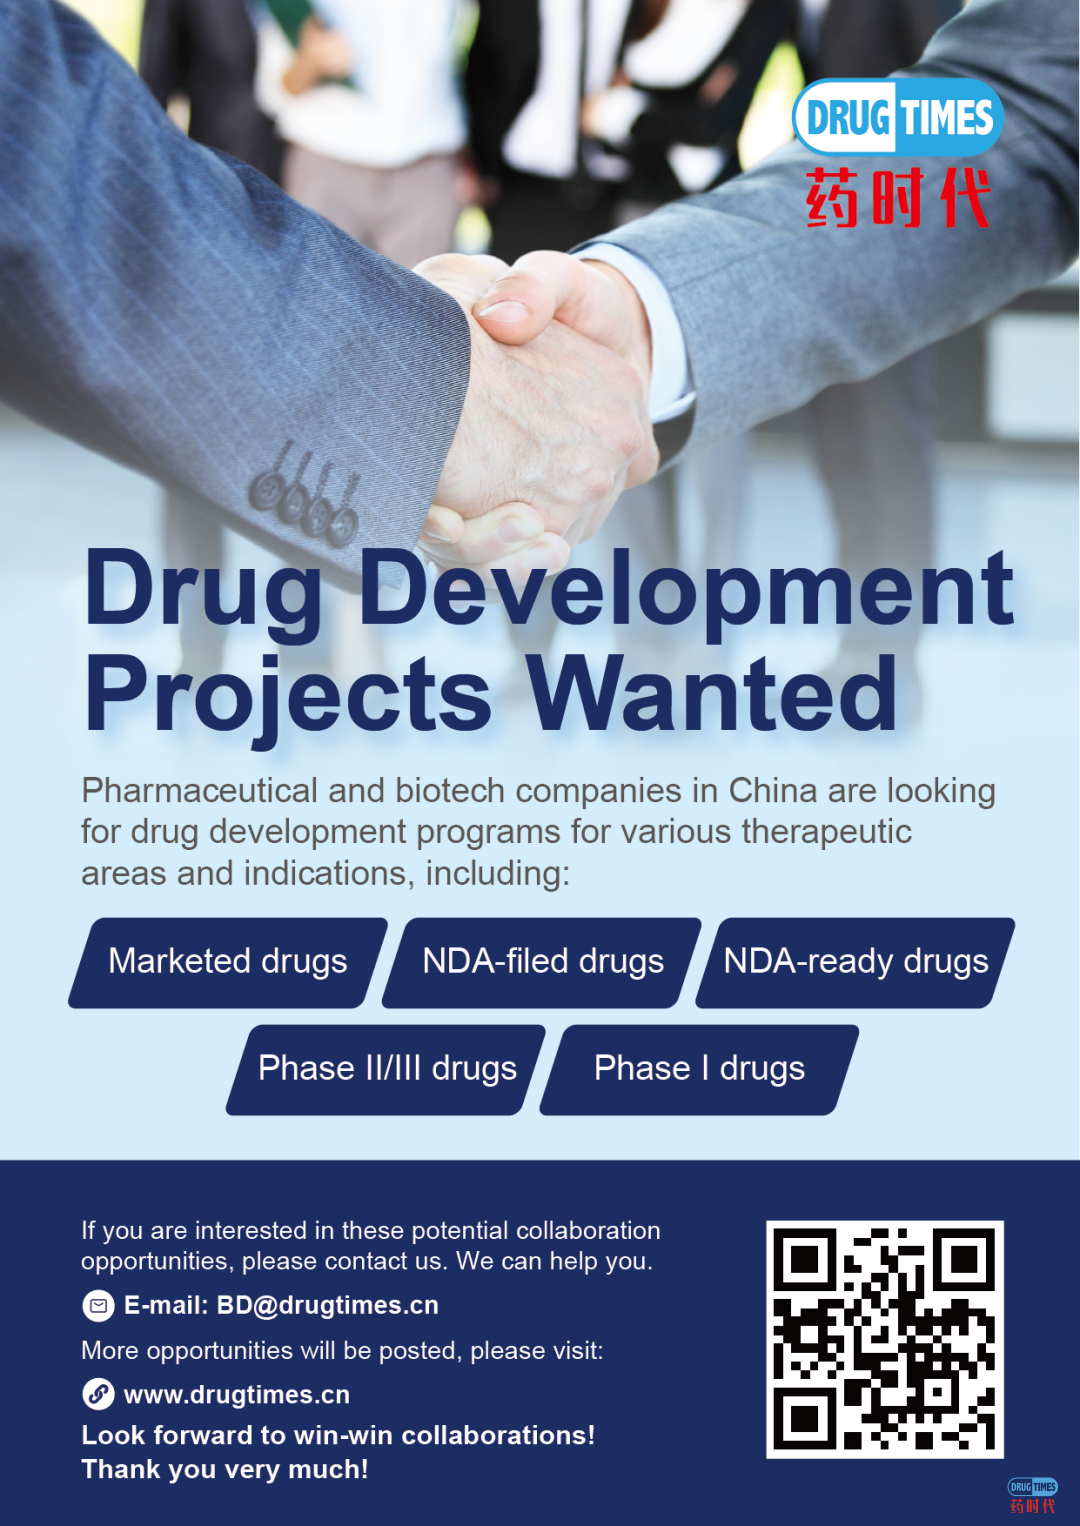 Drug Development Projects Wanted | DrugTimes